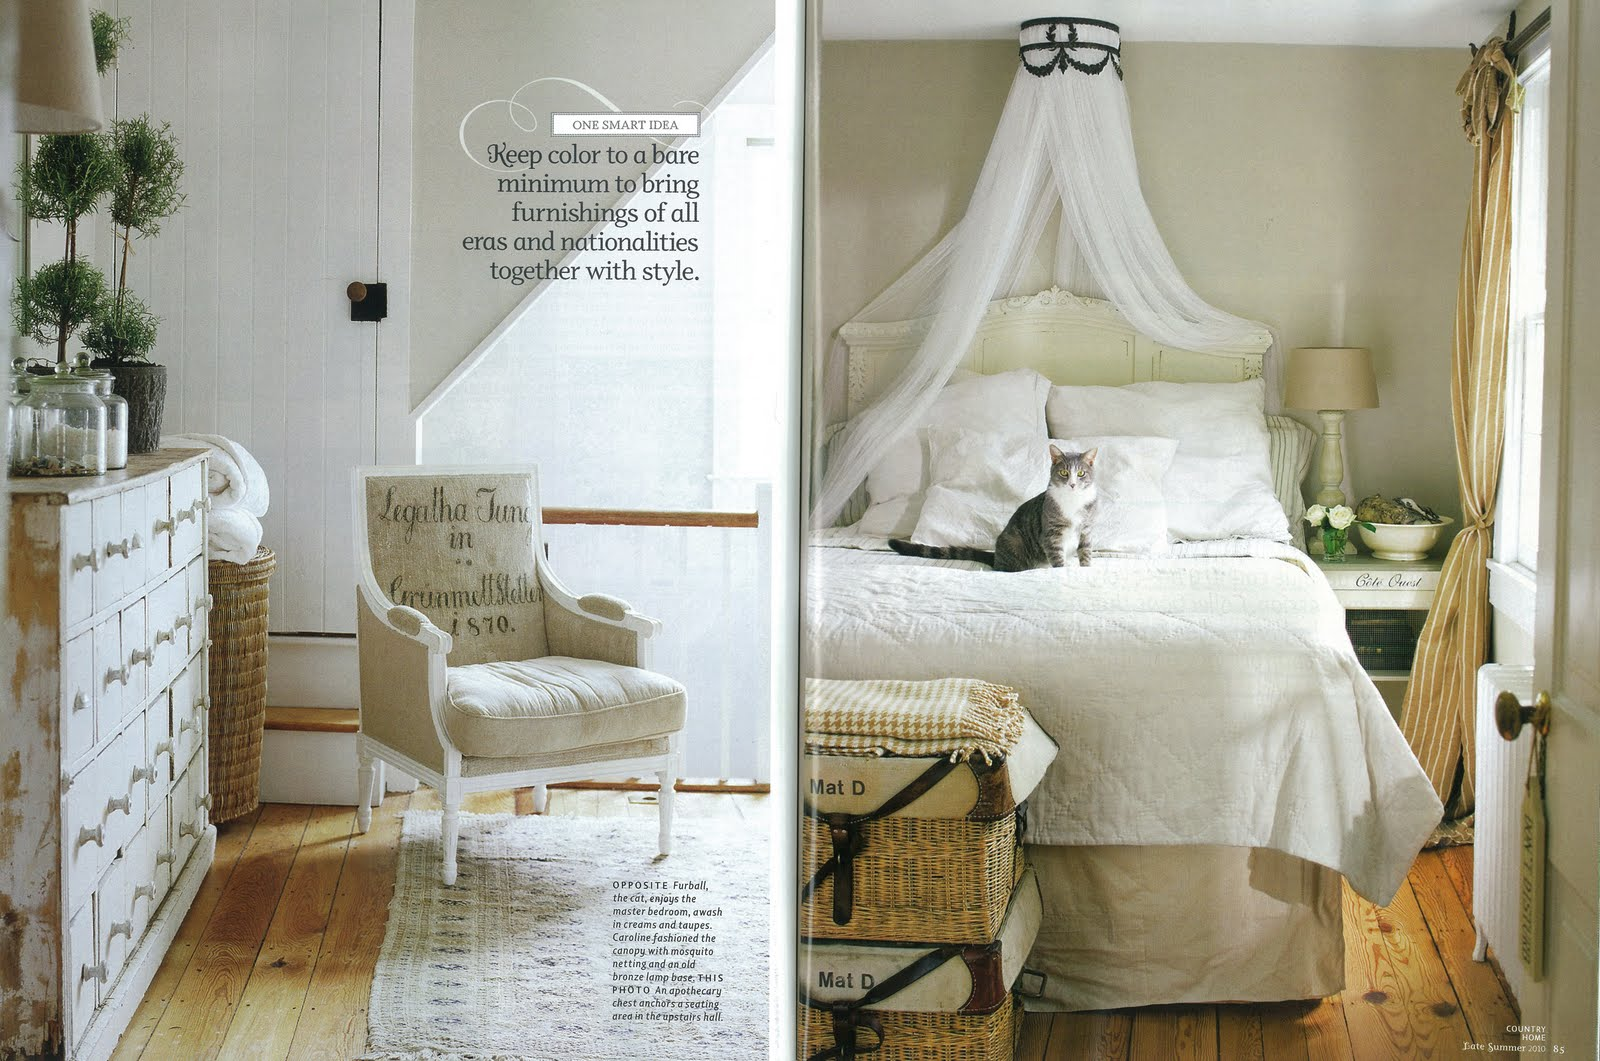 Bricolage new country home magazine and a plan b for Magazine bricolage decoration